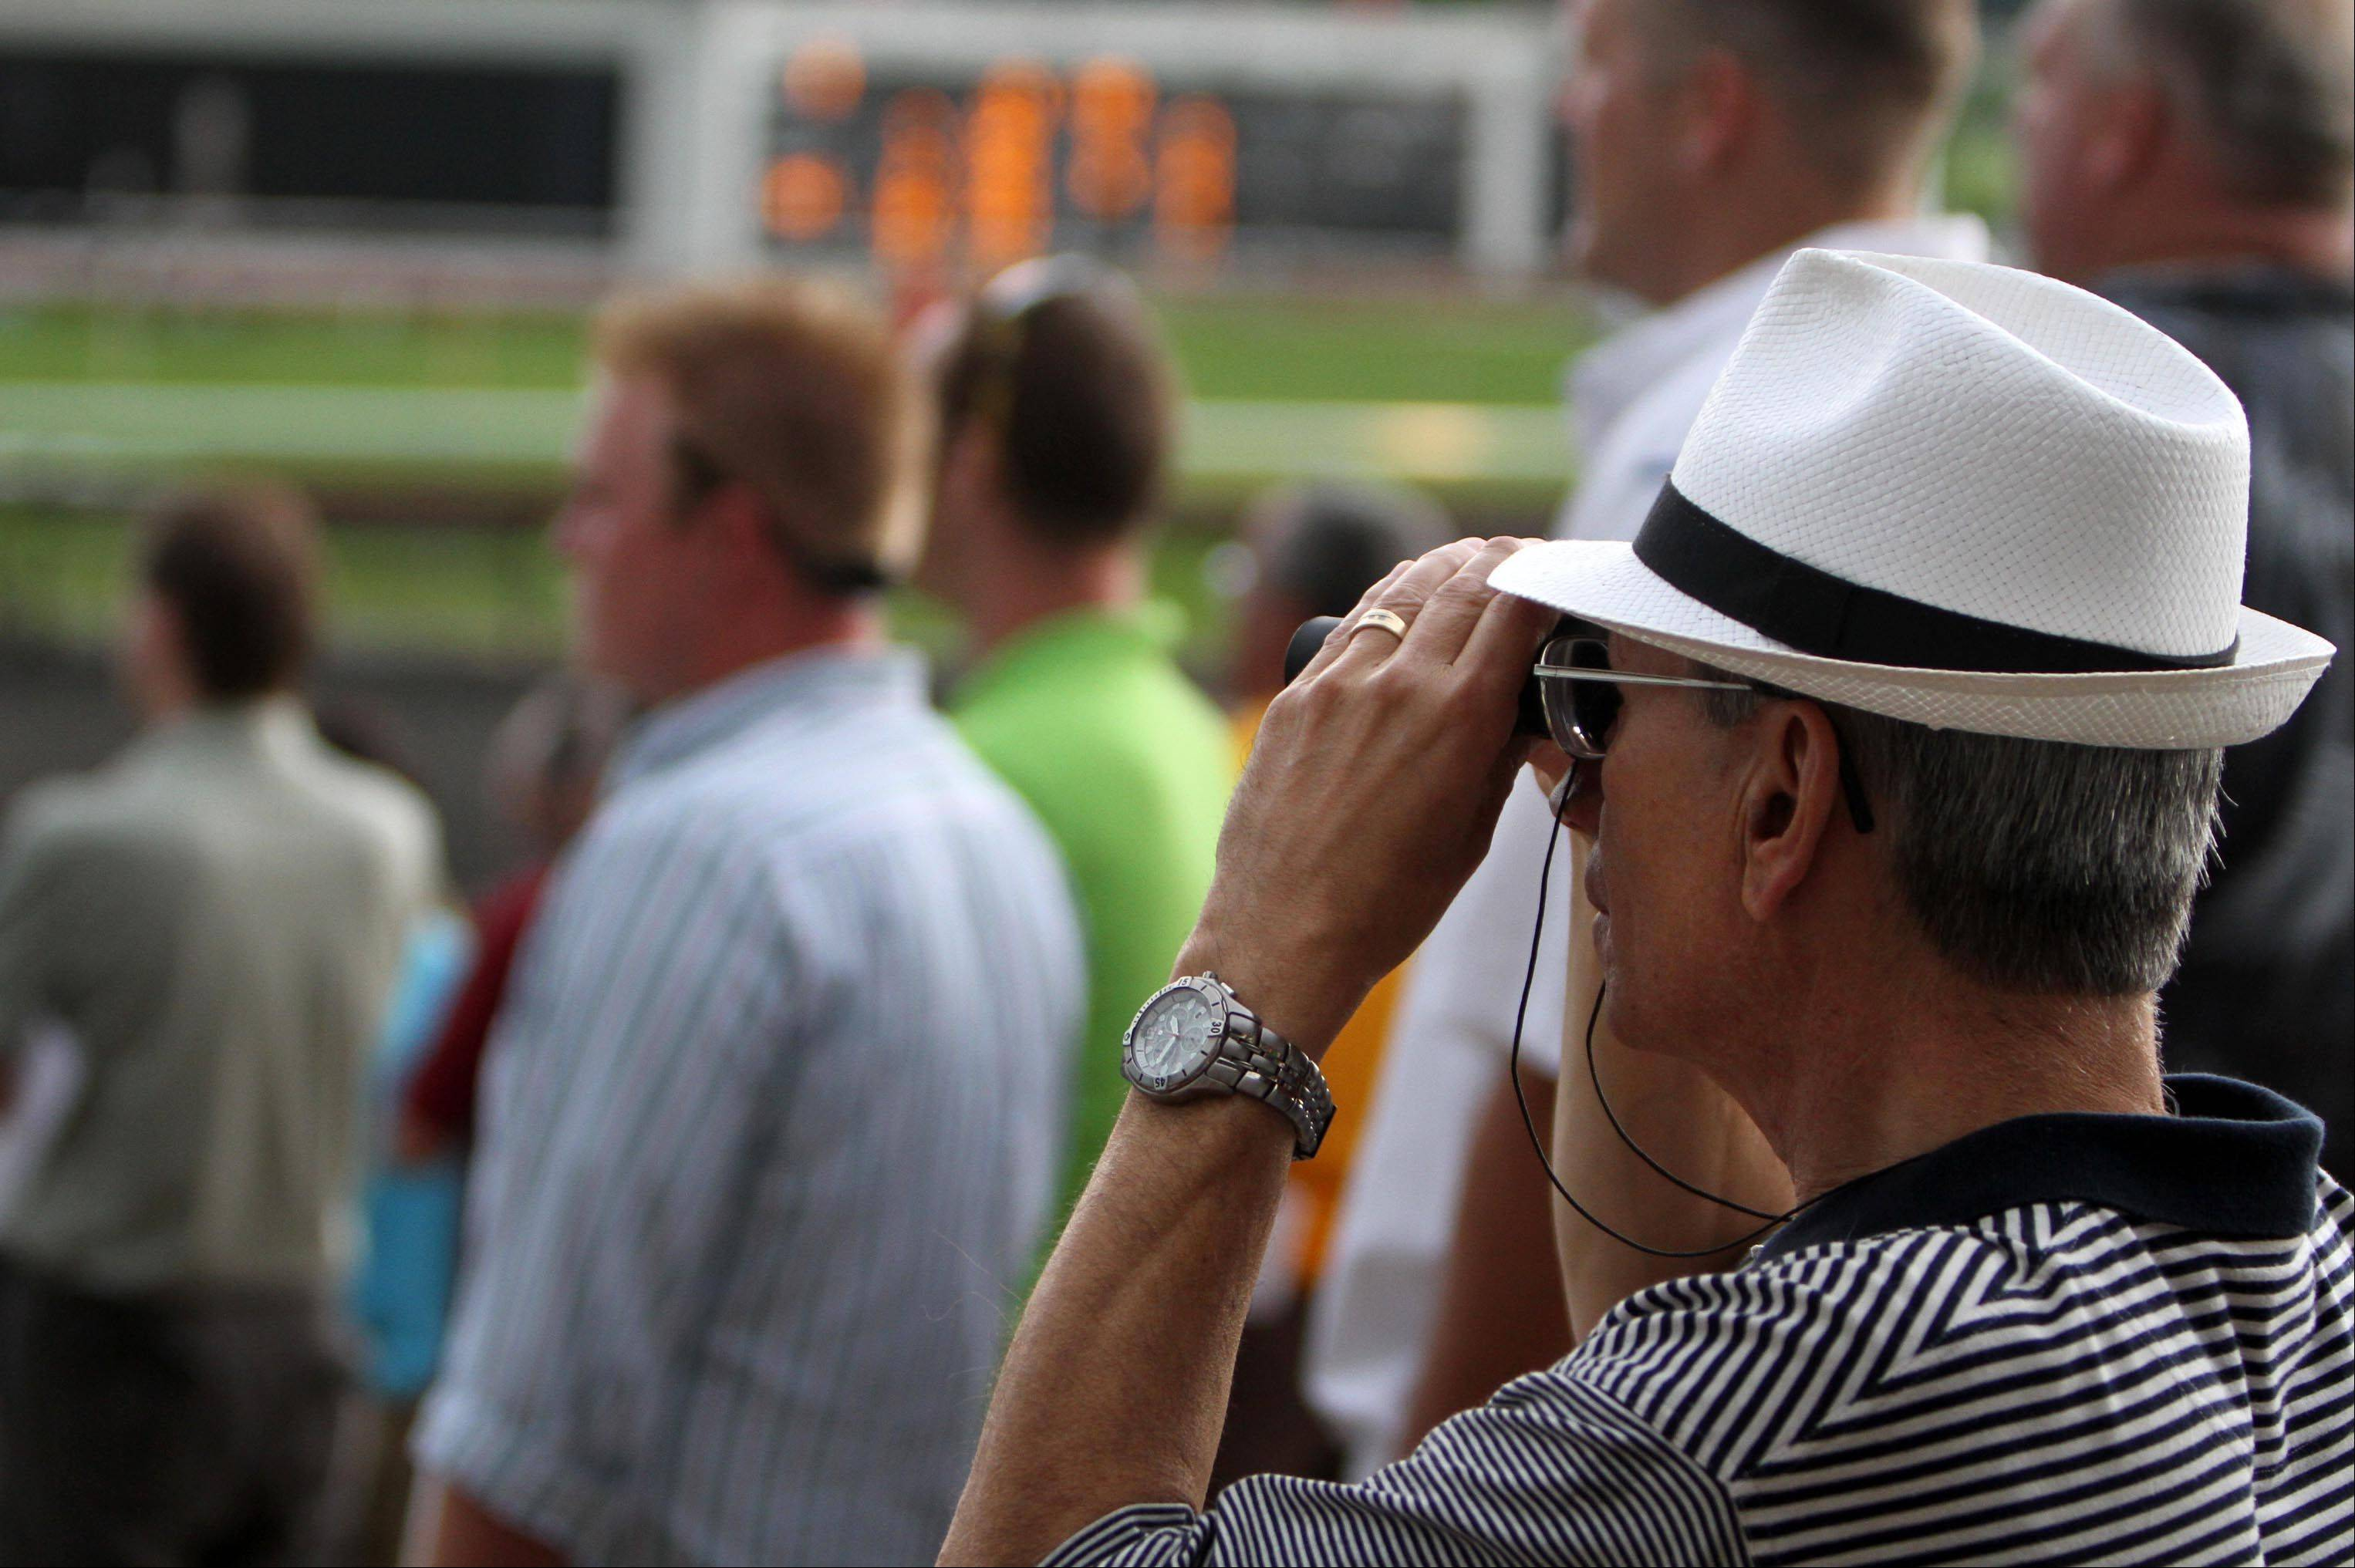 Al Hall of Arlington Heights takes a close look at an early race at Arlington Park on Saturday.